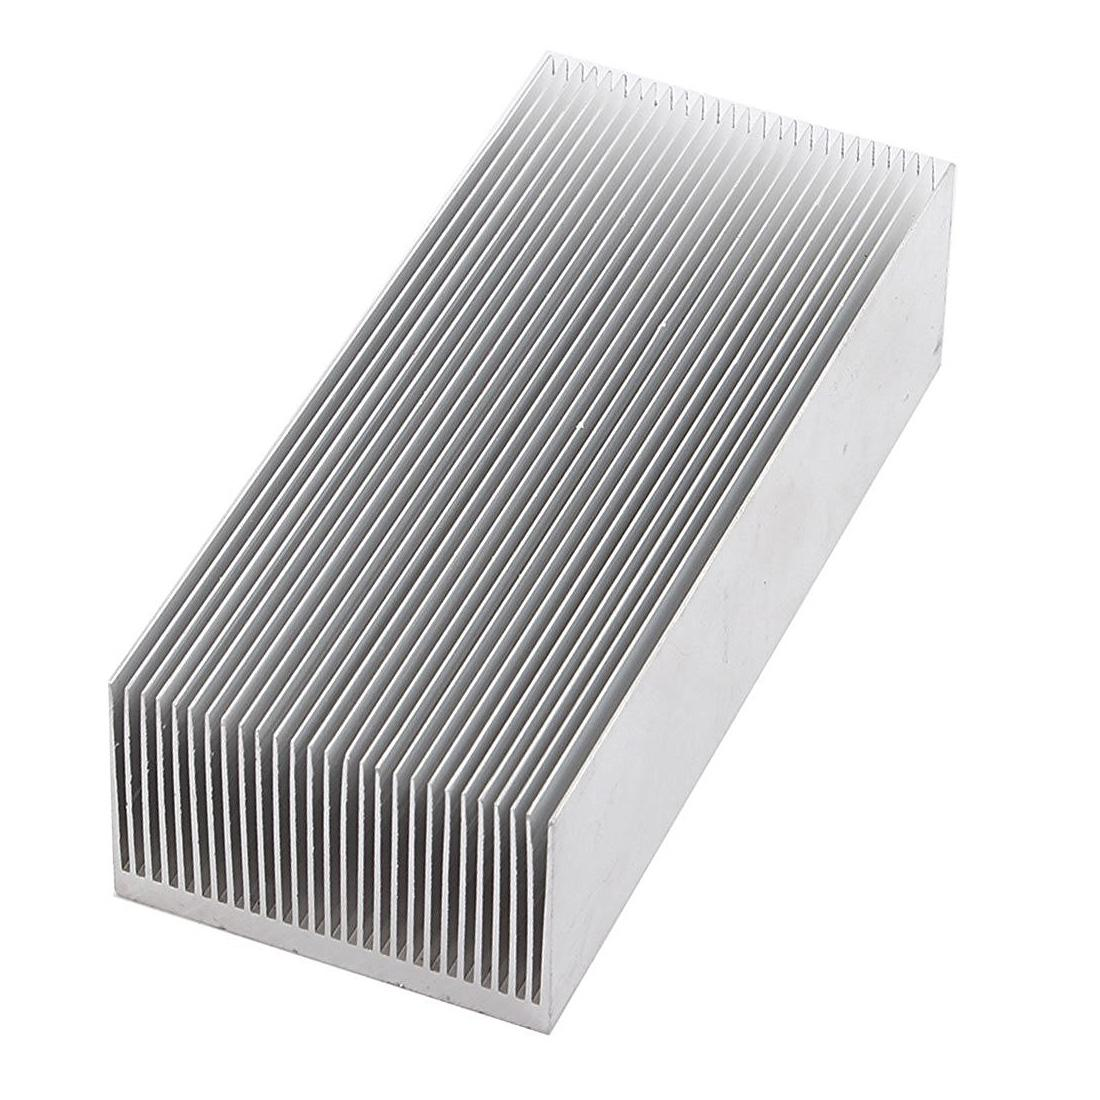 Freeshipping Aluminum Heat Radiator Heatsink Cooling Fin 150x69x37mm Silver Tone